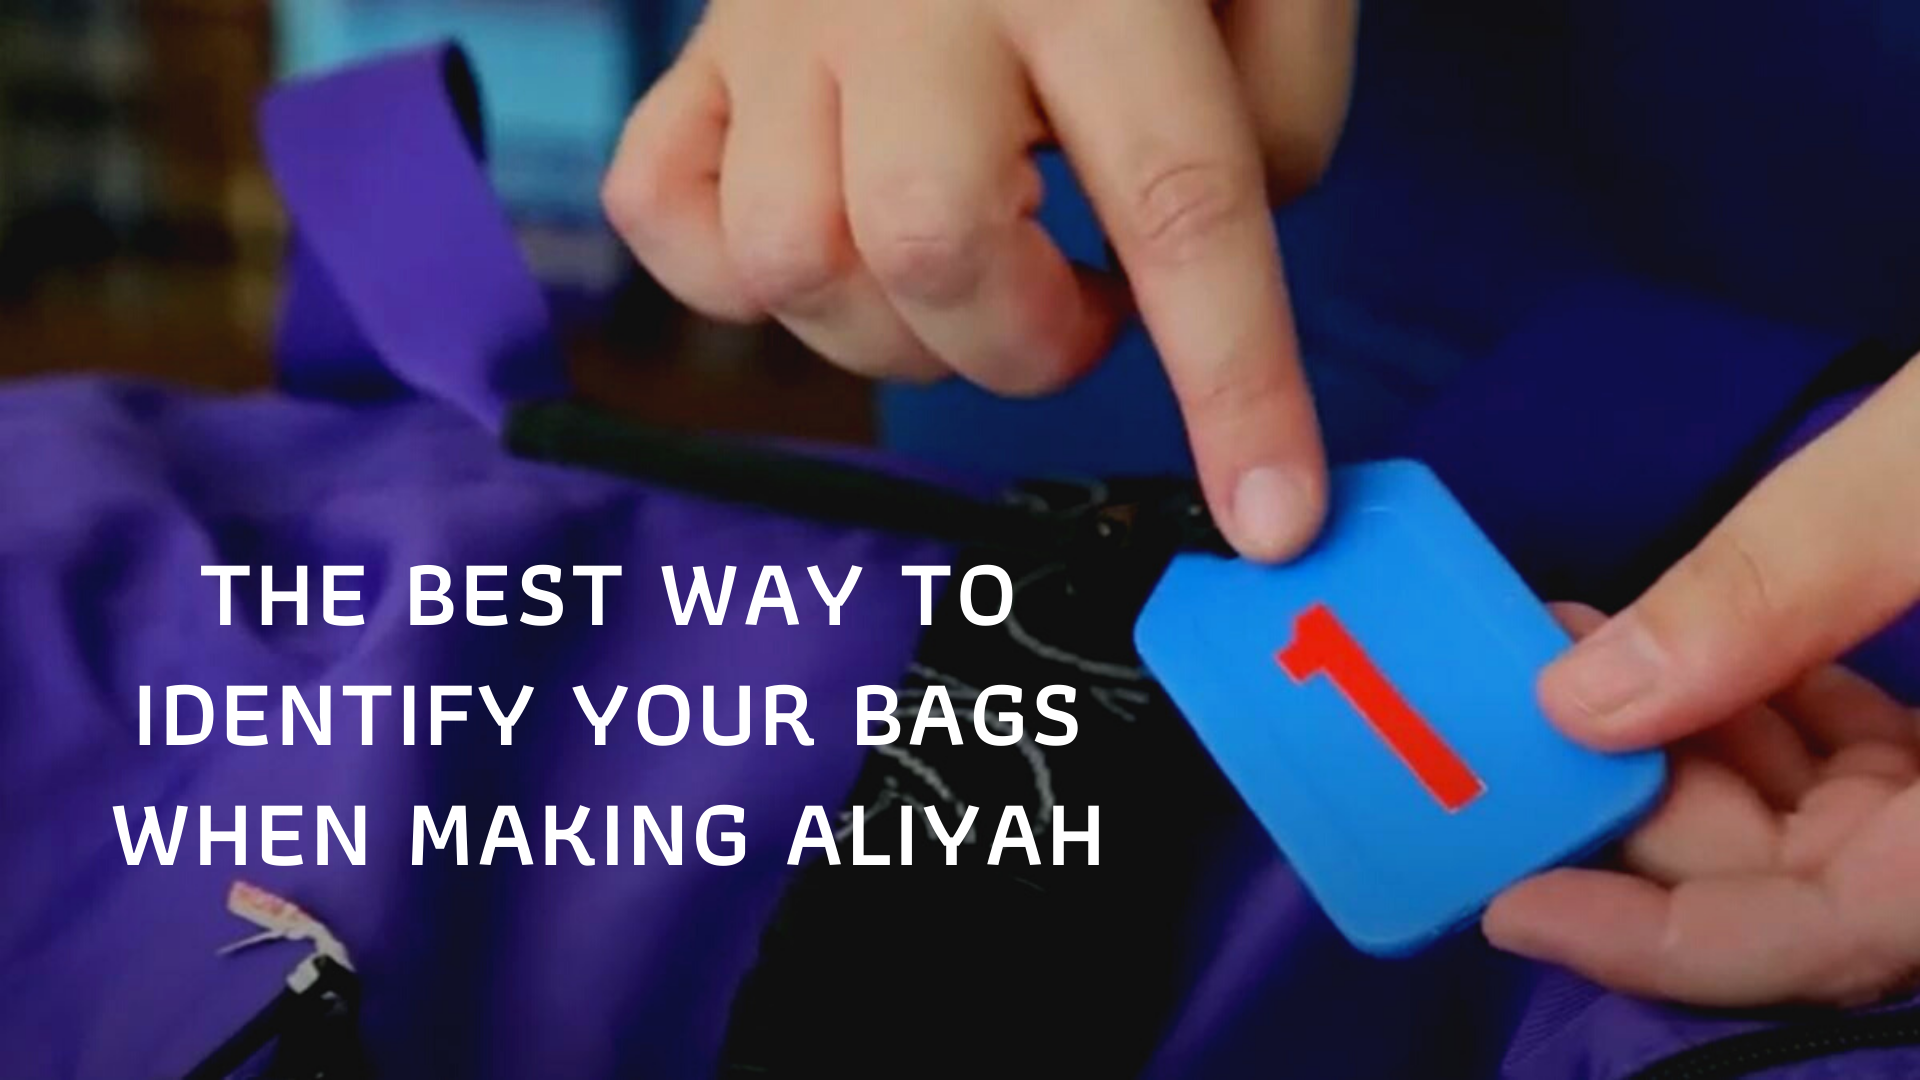 The Best Way to Identify Your Bags When Making Aliyah - Video Blog